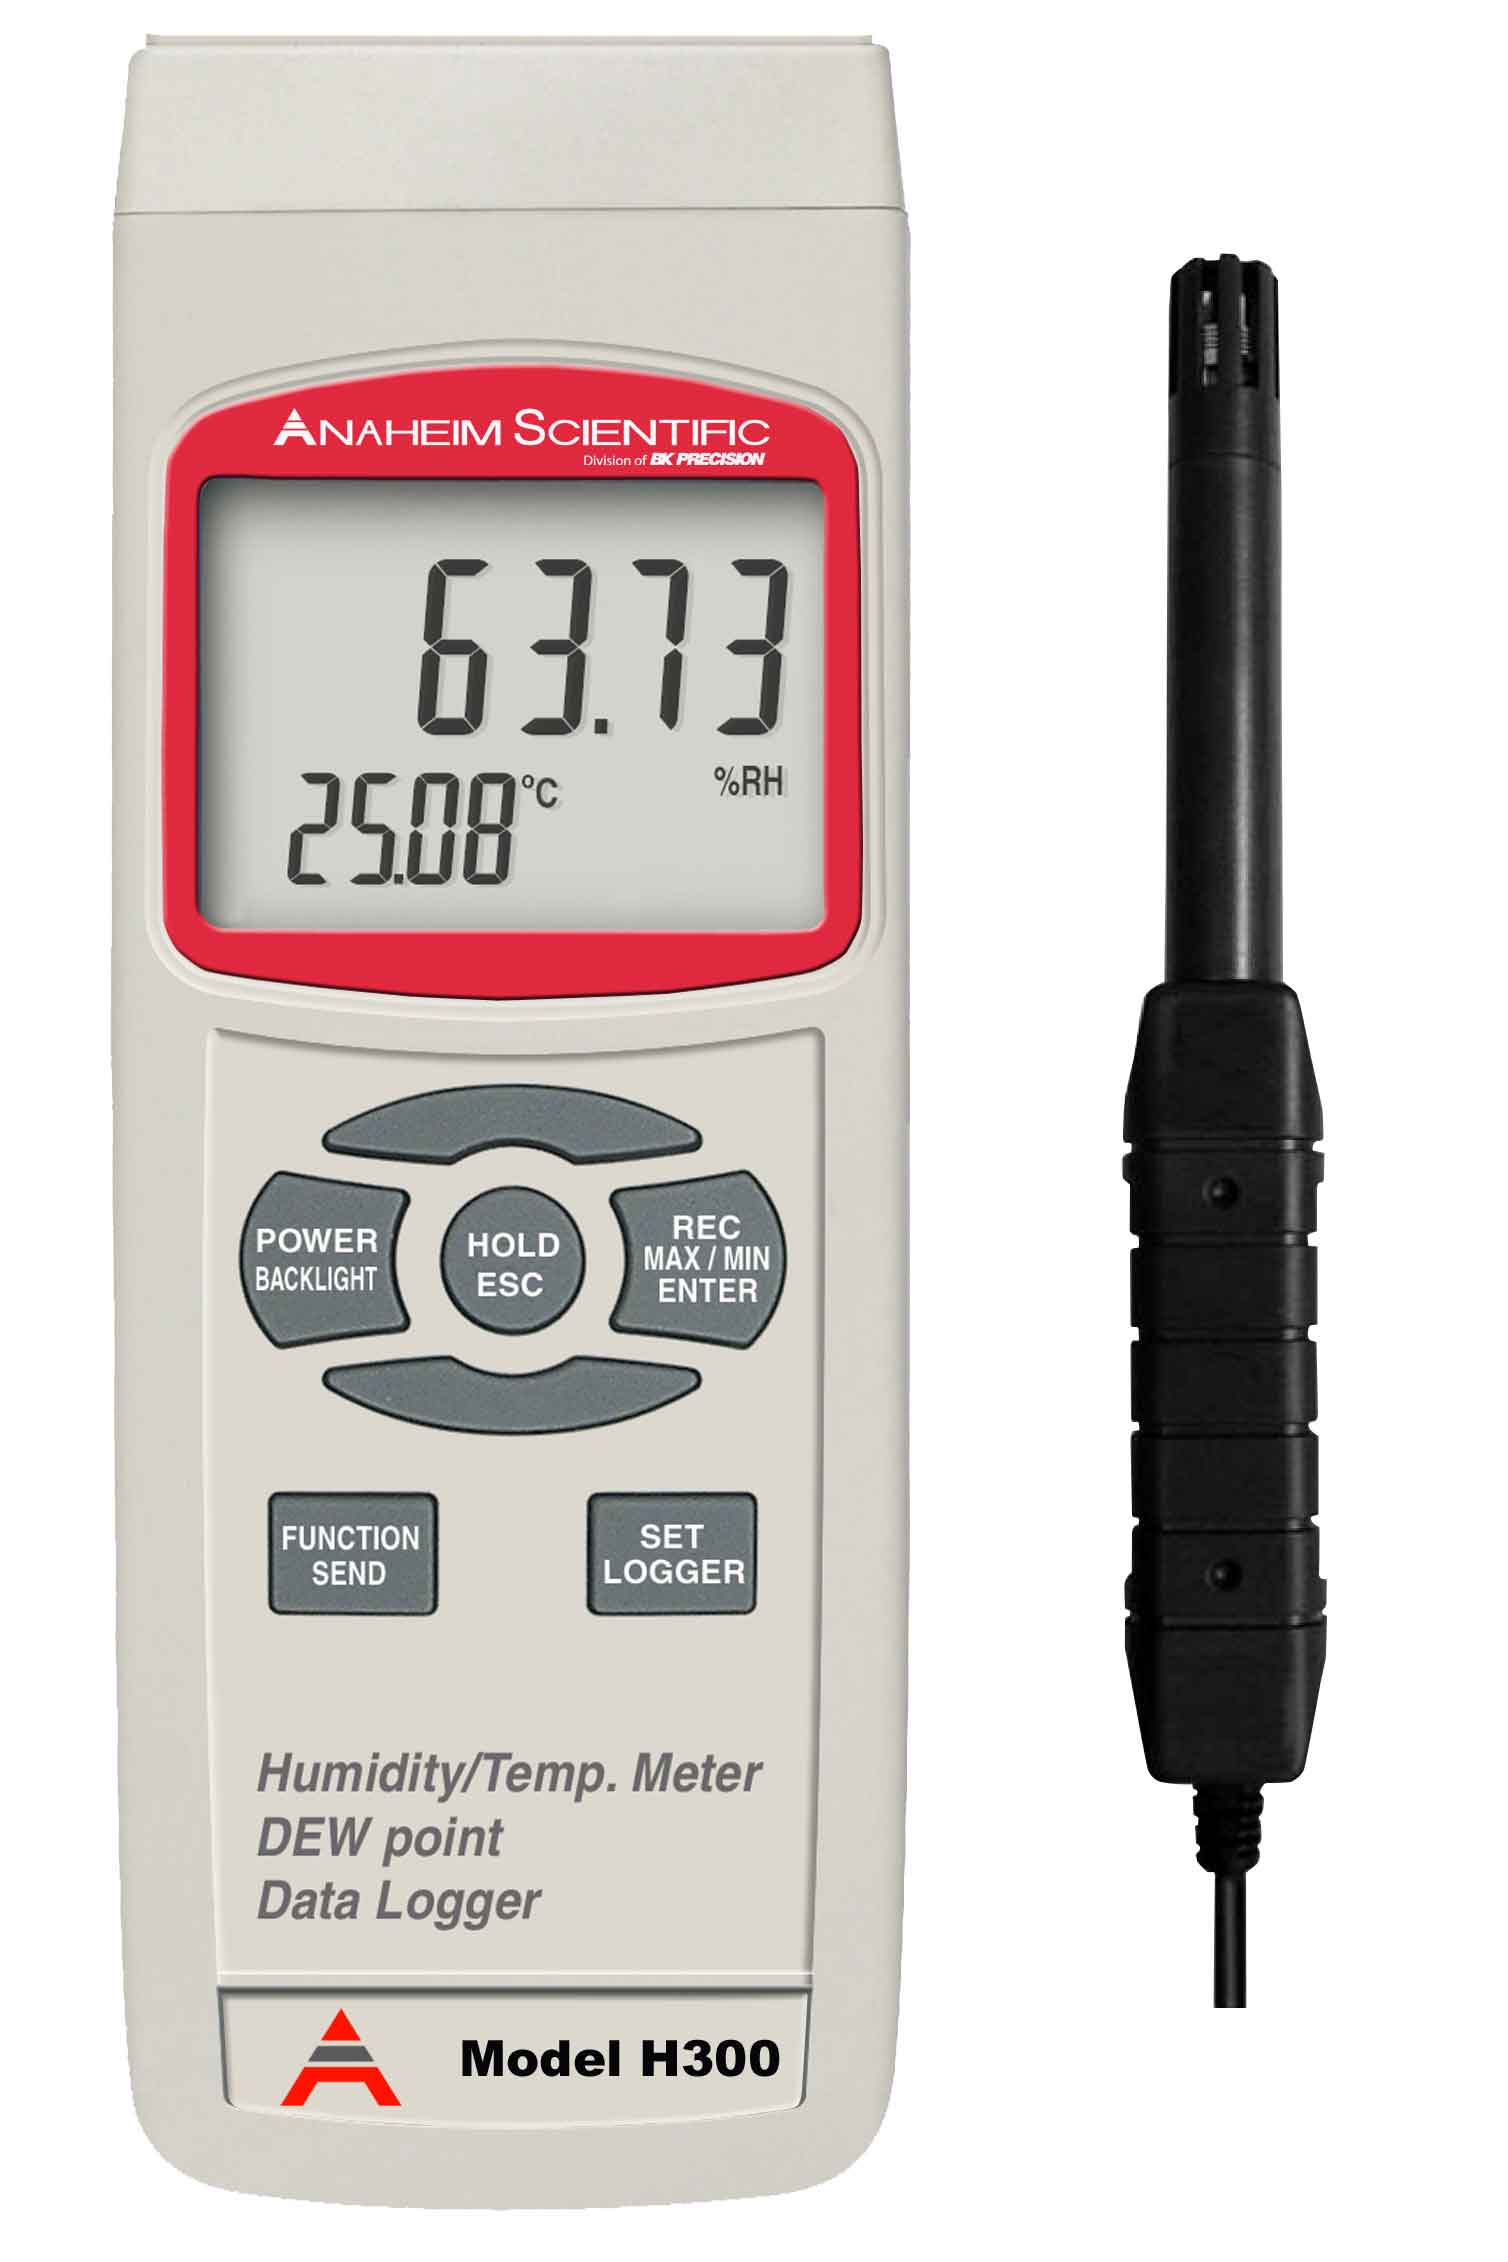 Global Specialties H300 Humidity/Temperature Meter with DEW Point and Data Logger Photo